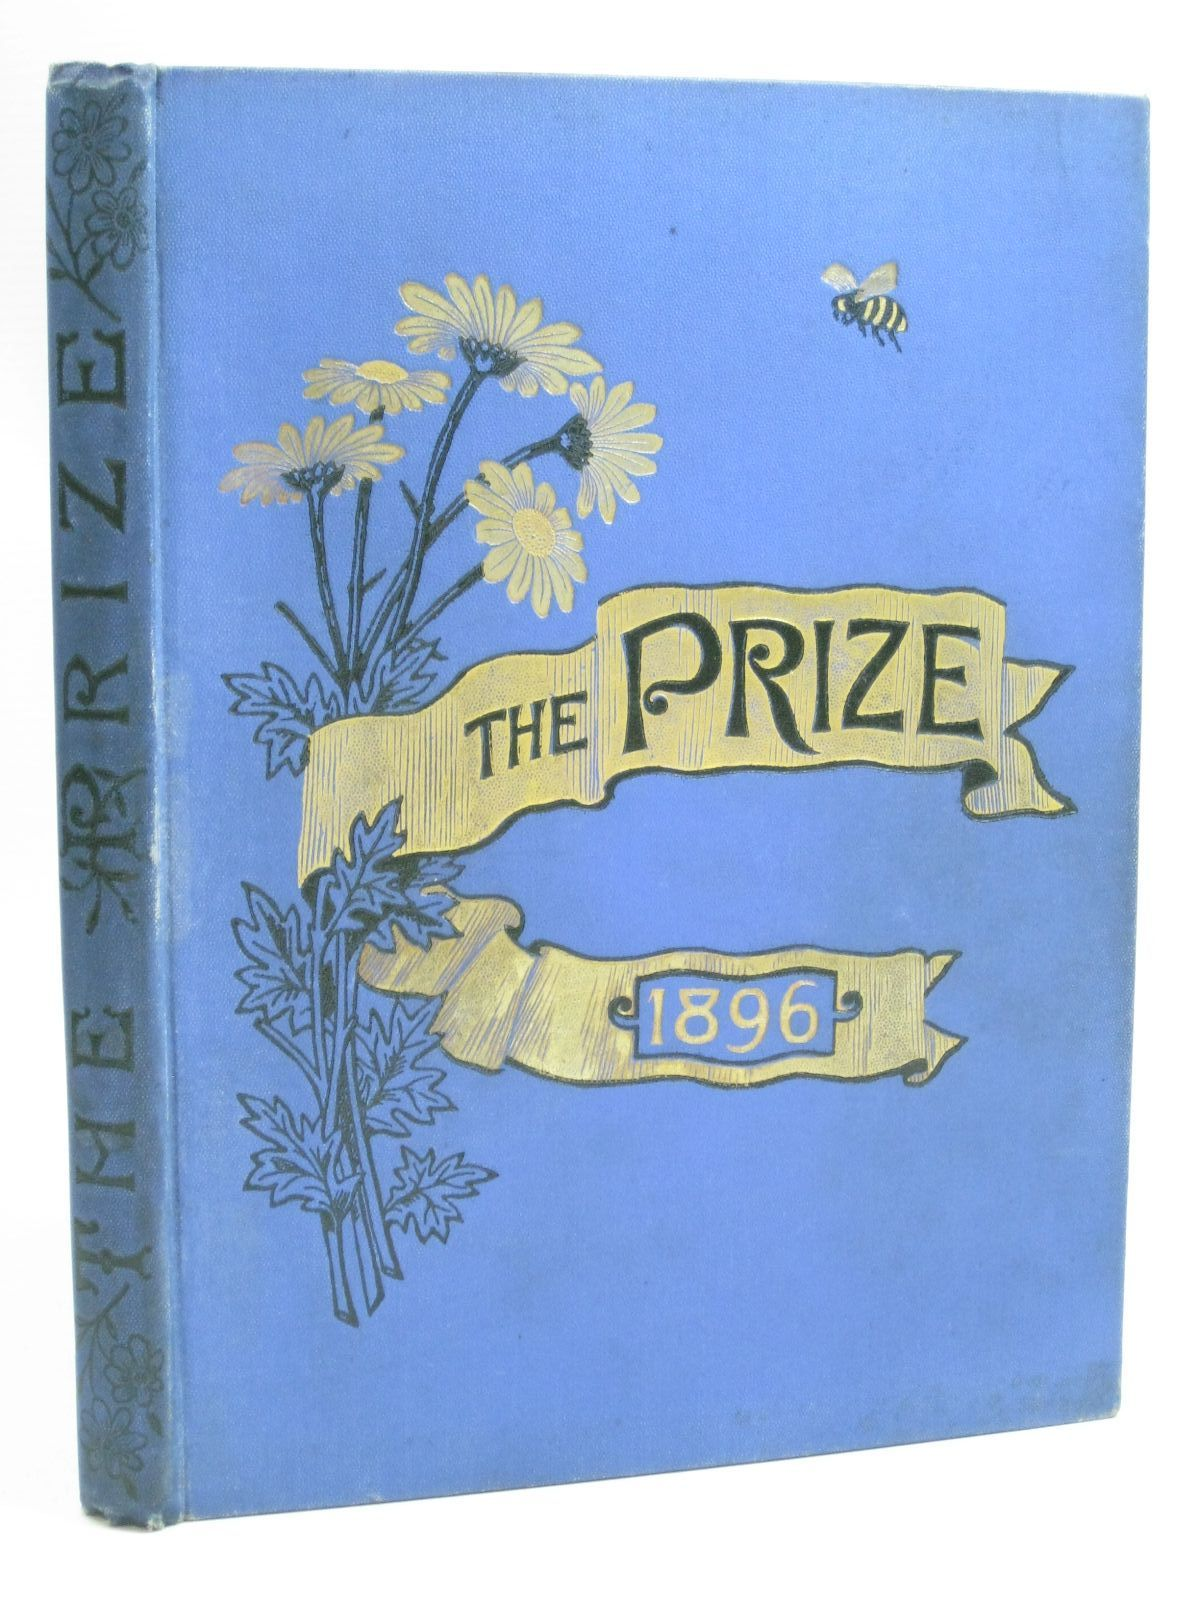 Photo of THE PRIZE FOR GIRLS AND BOYS 1896 published by Wells Gardner, Darton & Co. (STOCK CODE: 1506086)  for sale by Stella & Rose's Books